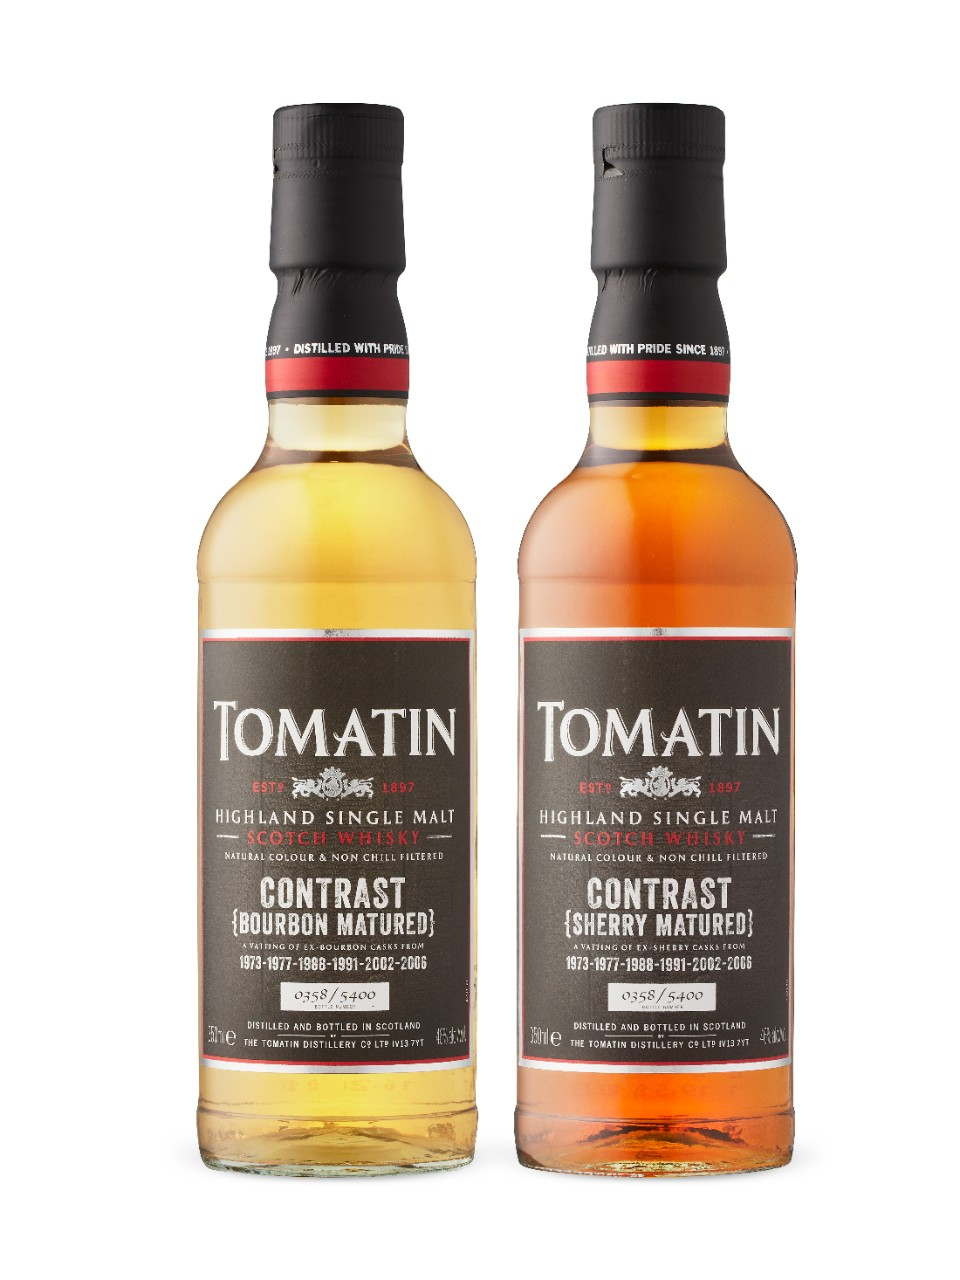 Image for Tomatin Highland Single Malt Contrast Edition from LCBO